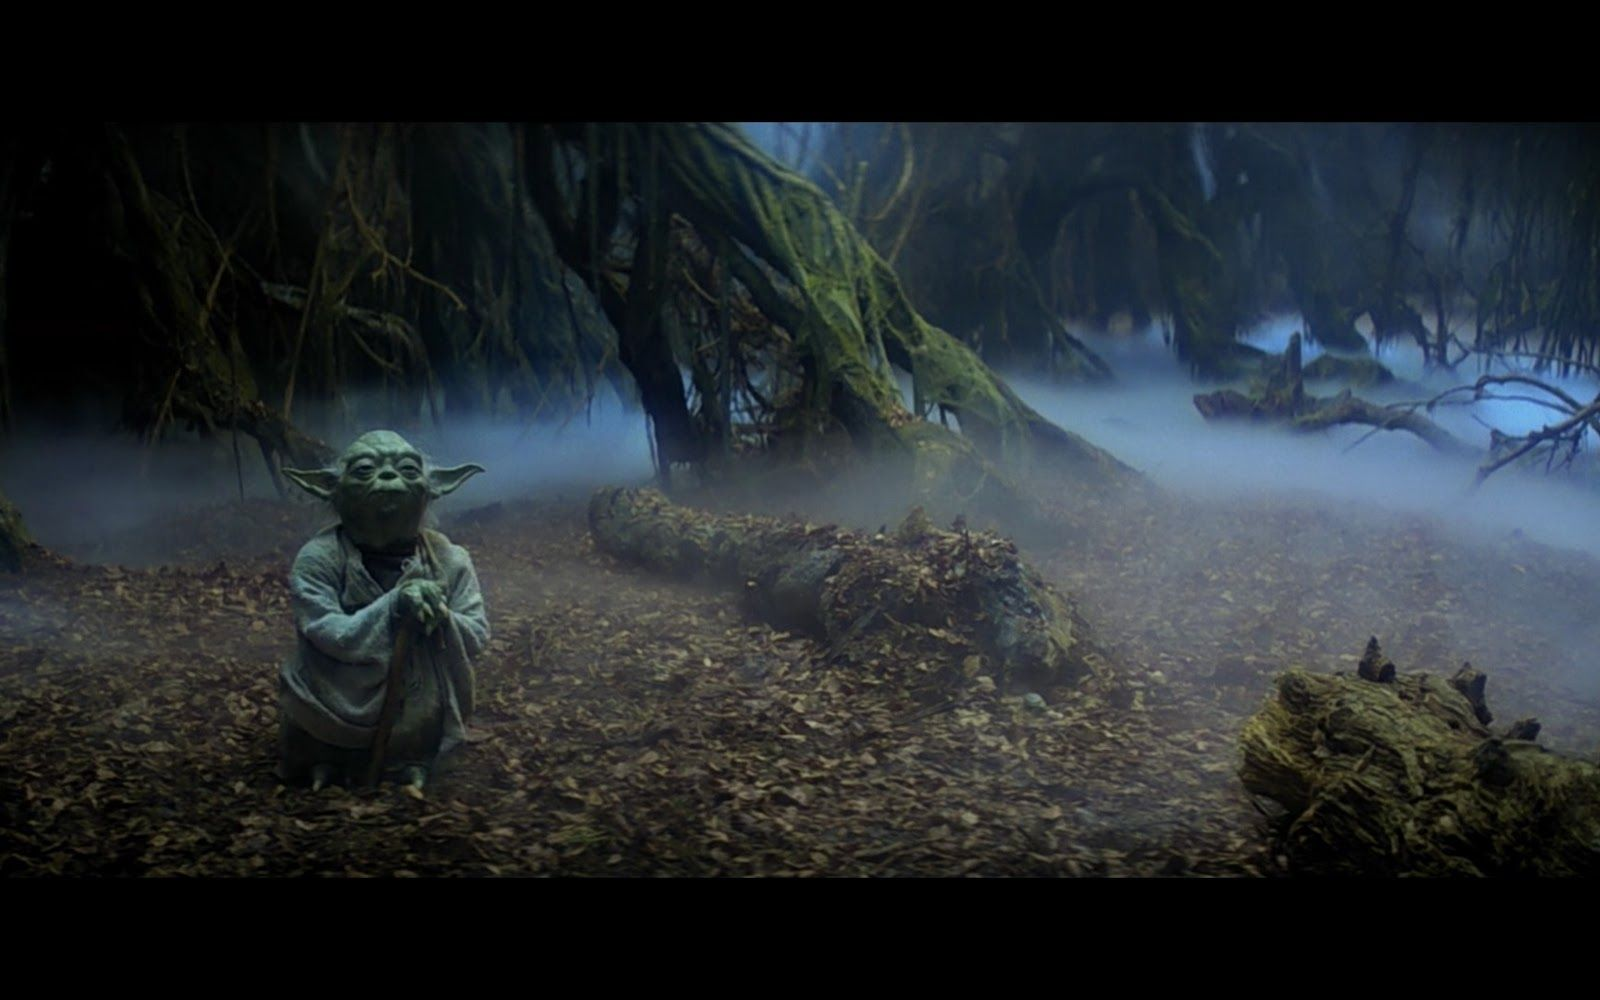 Star Wars Archives Cool Things Collection Yoda Wallpaper Star Wars Wallpaper Wallpaper Pictures